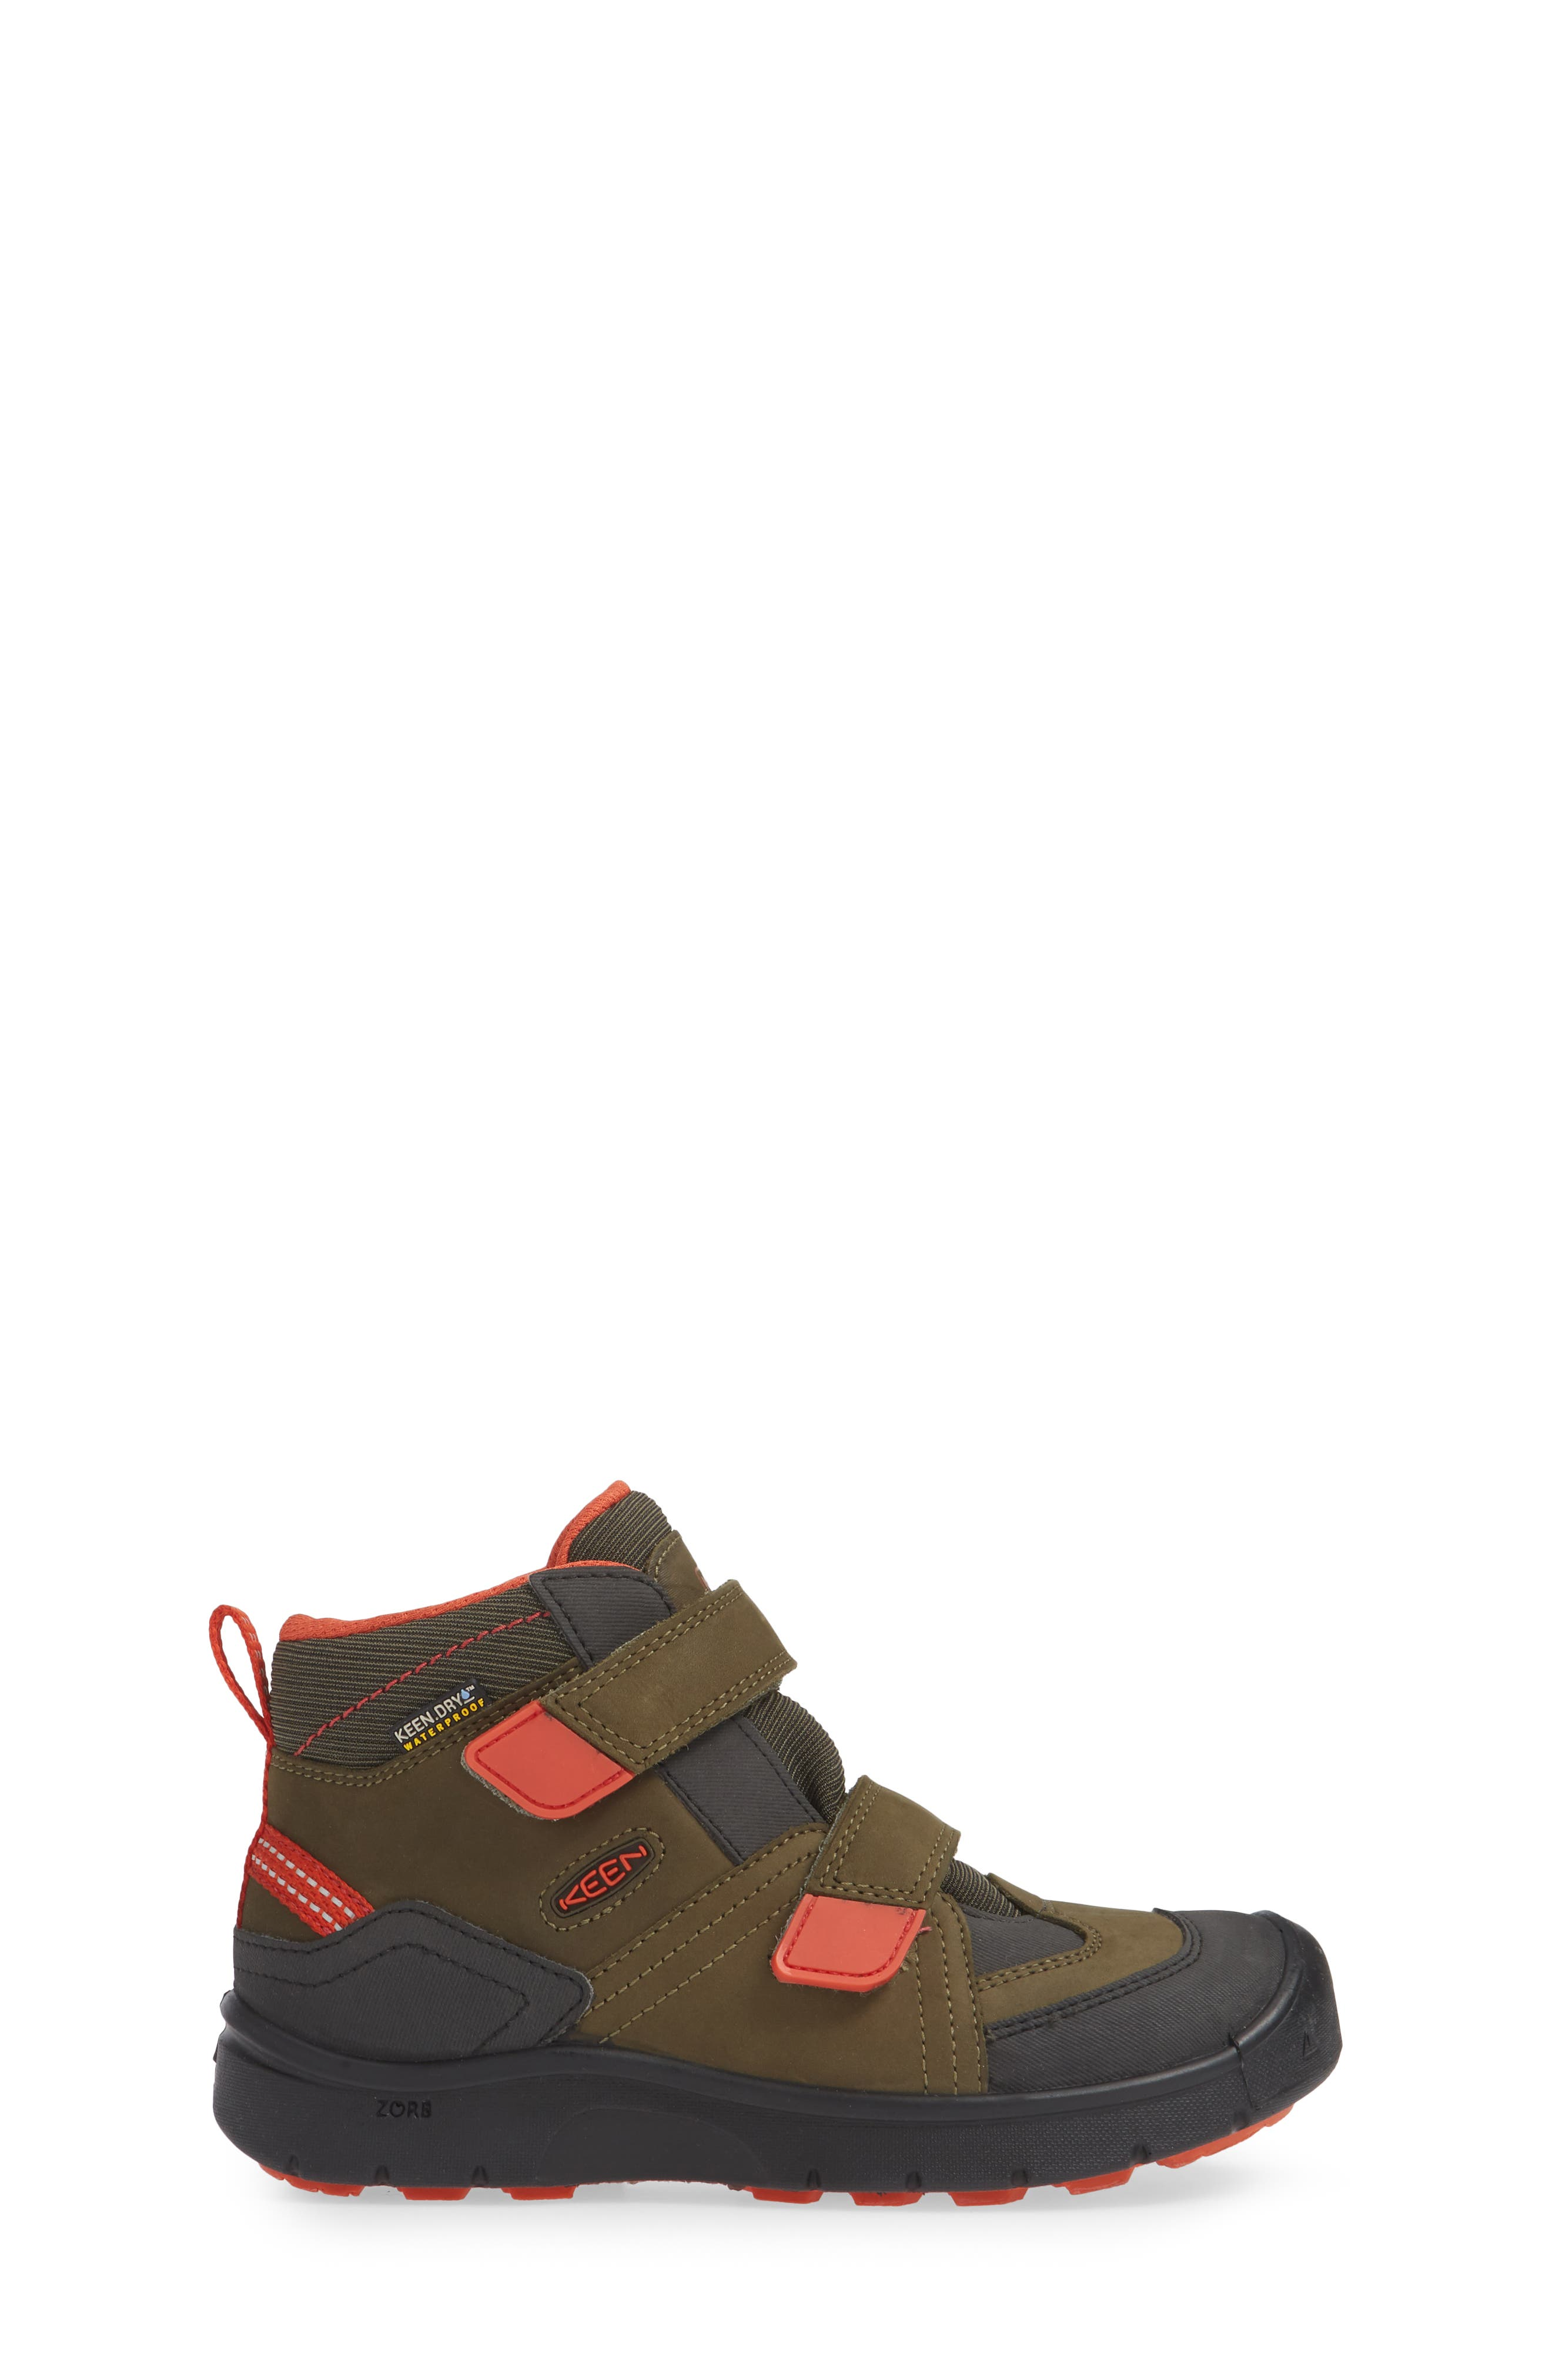 Hikeport Strap Waterproof Mid Boot,                             Alternate thumbnail 3, color,                             MARTINI OLIVE/ PUMPKIN